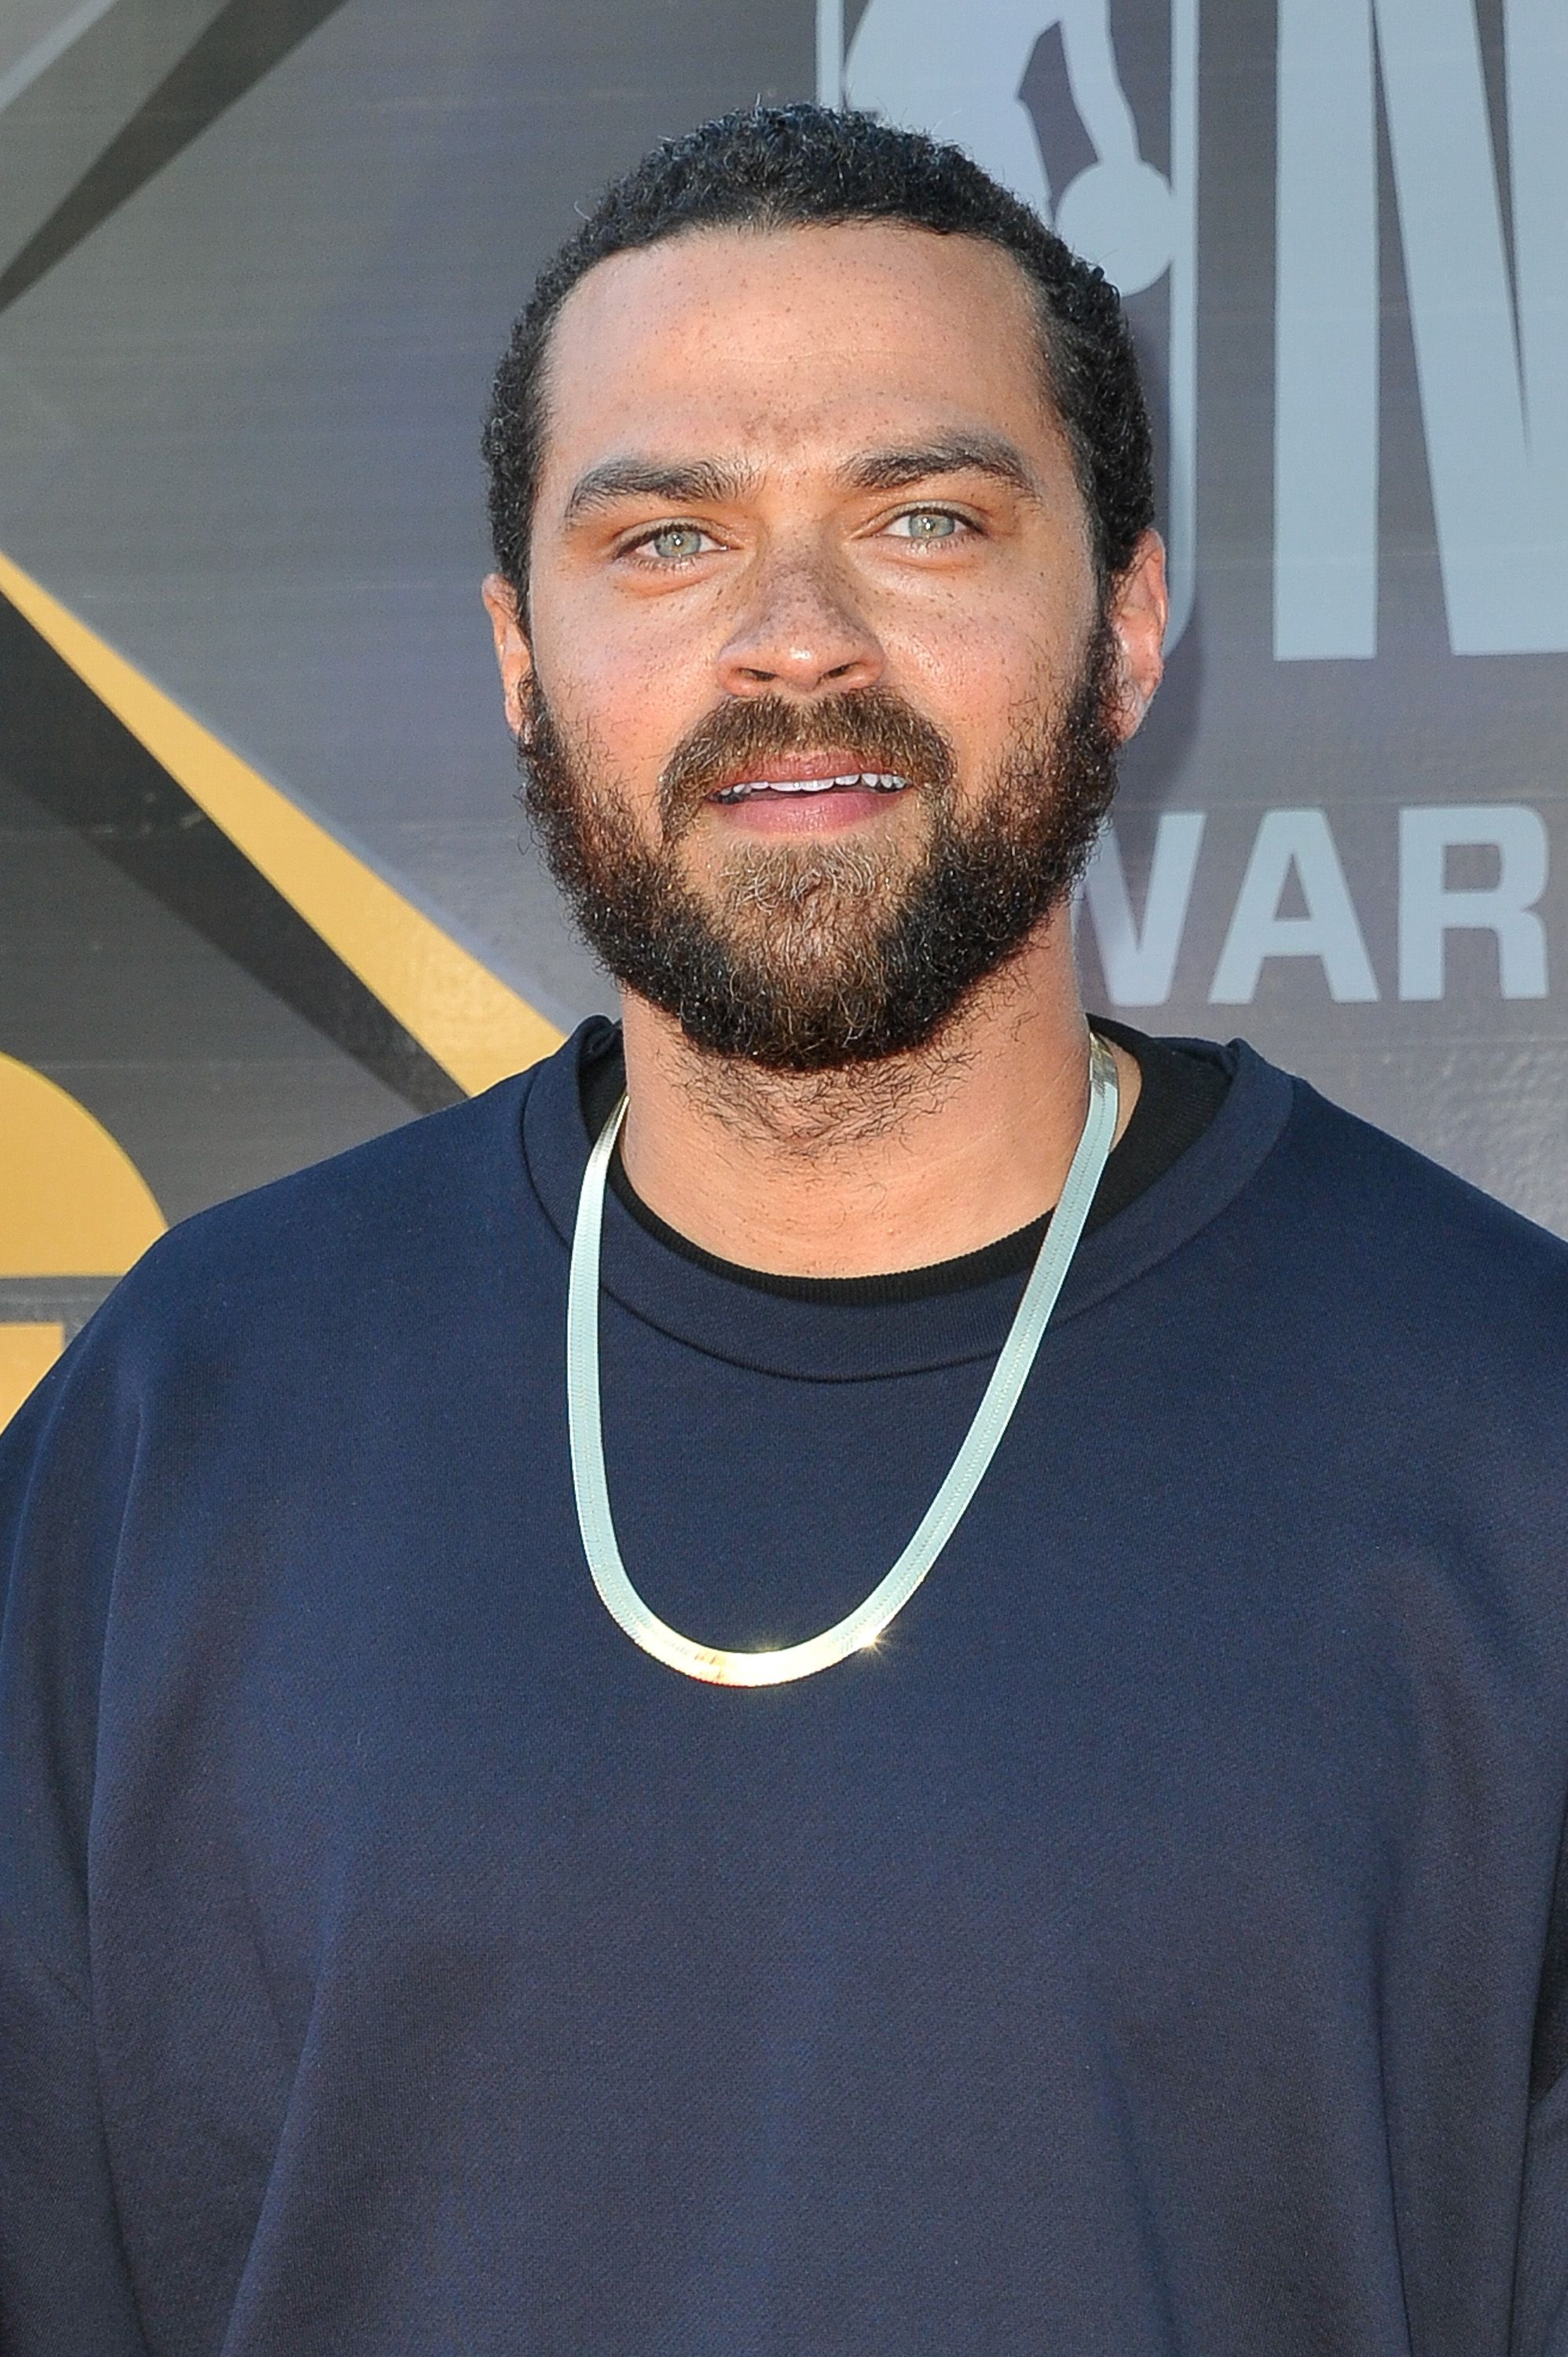 Jesse Williams at the NBA Awards Show at Barker Hangar on June 25, 2018 in Santa Monica, California | Photo: Getty Images